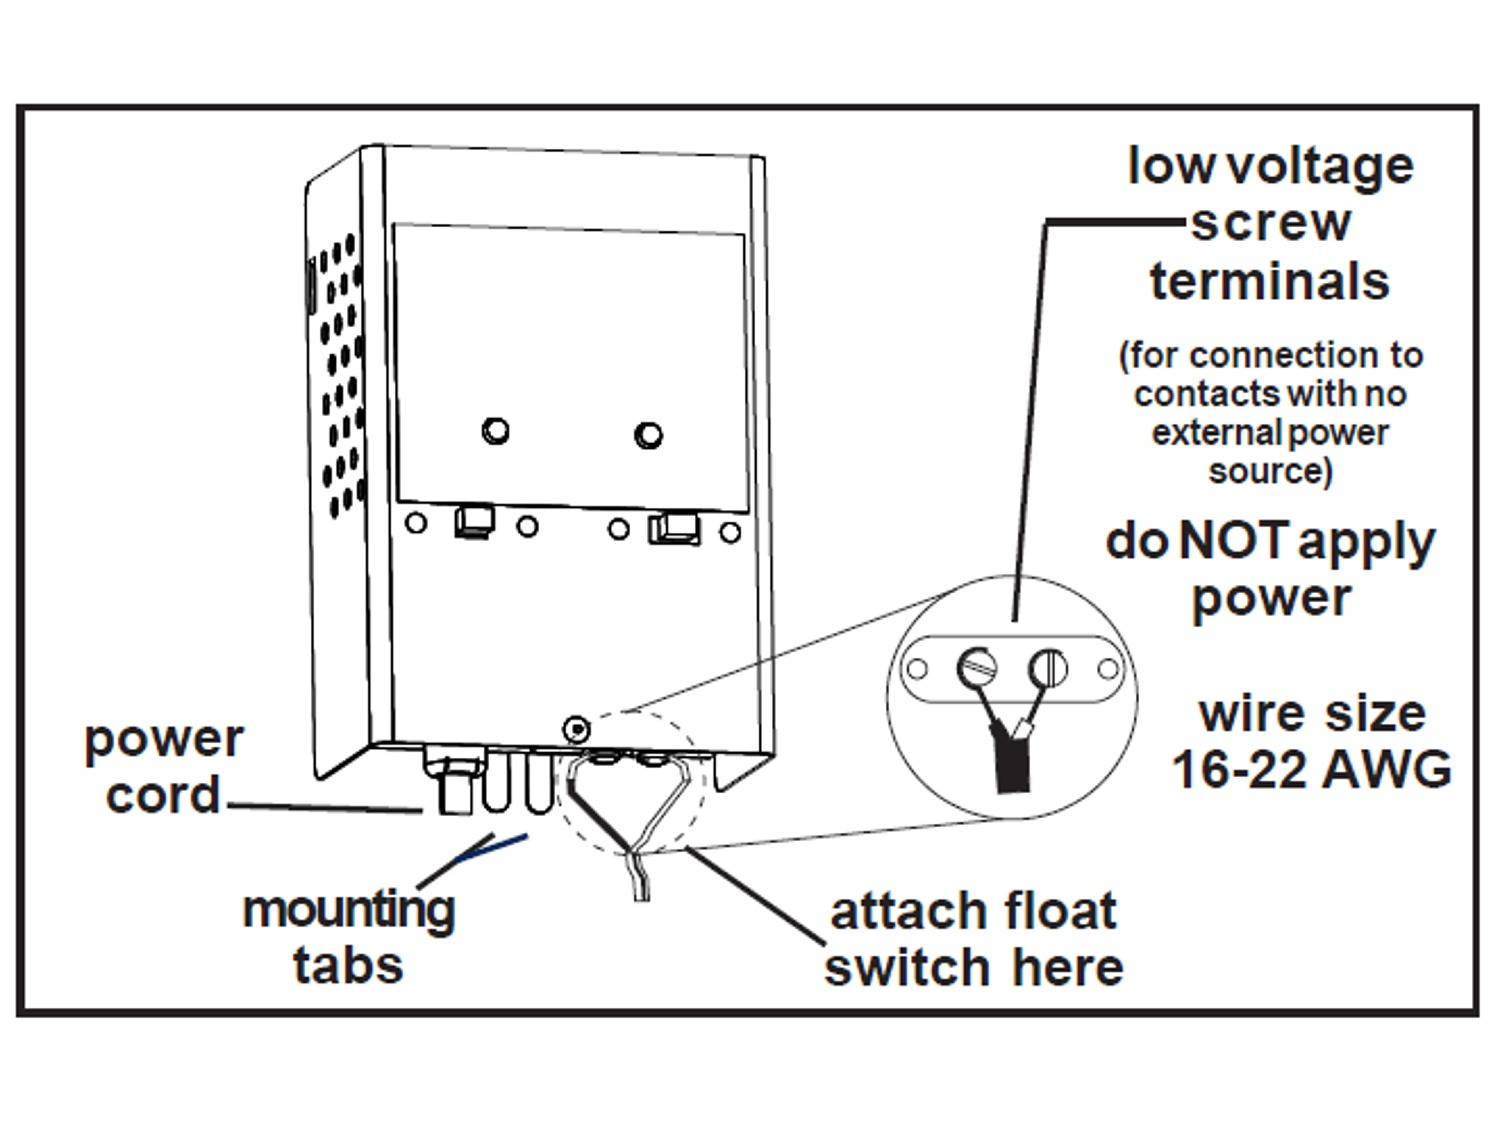 Septic Tank Low Voltage Alarm Float Switch Wiring Diagram